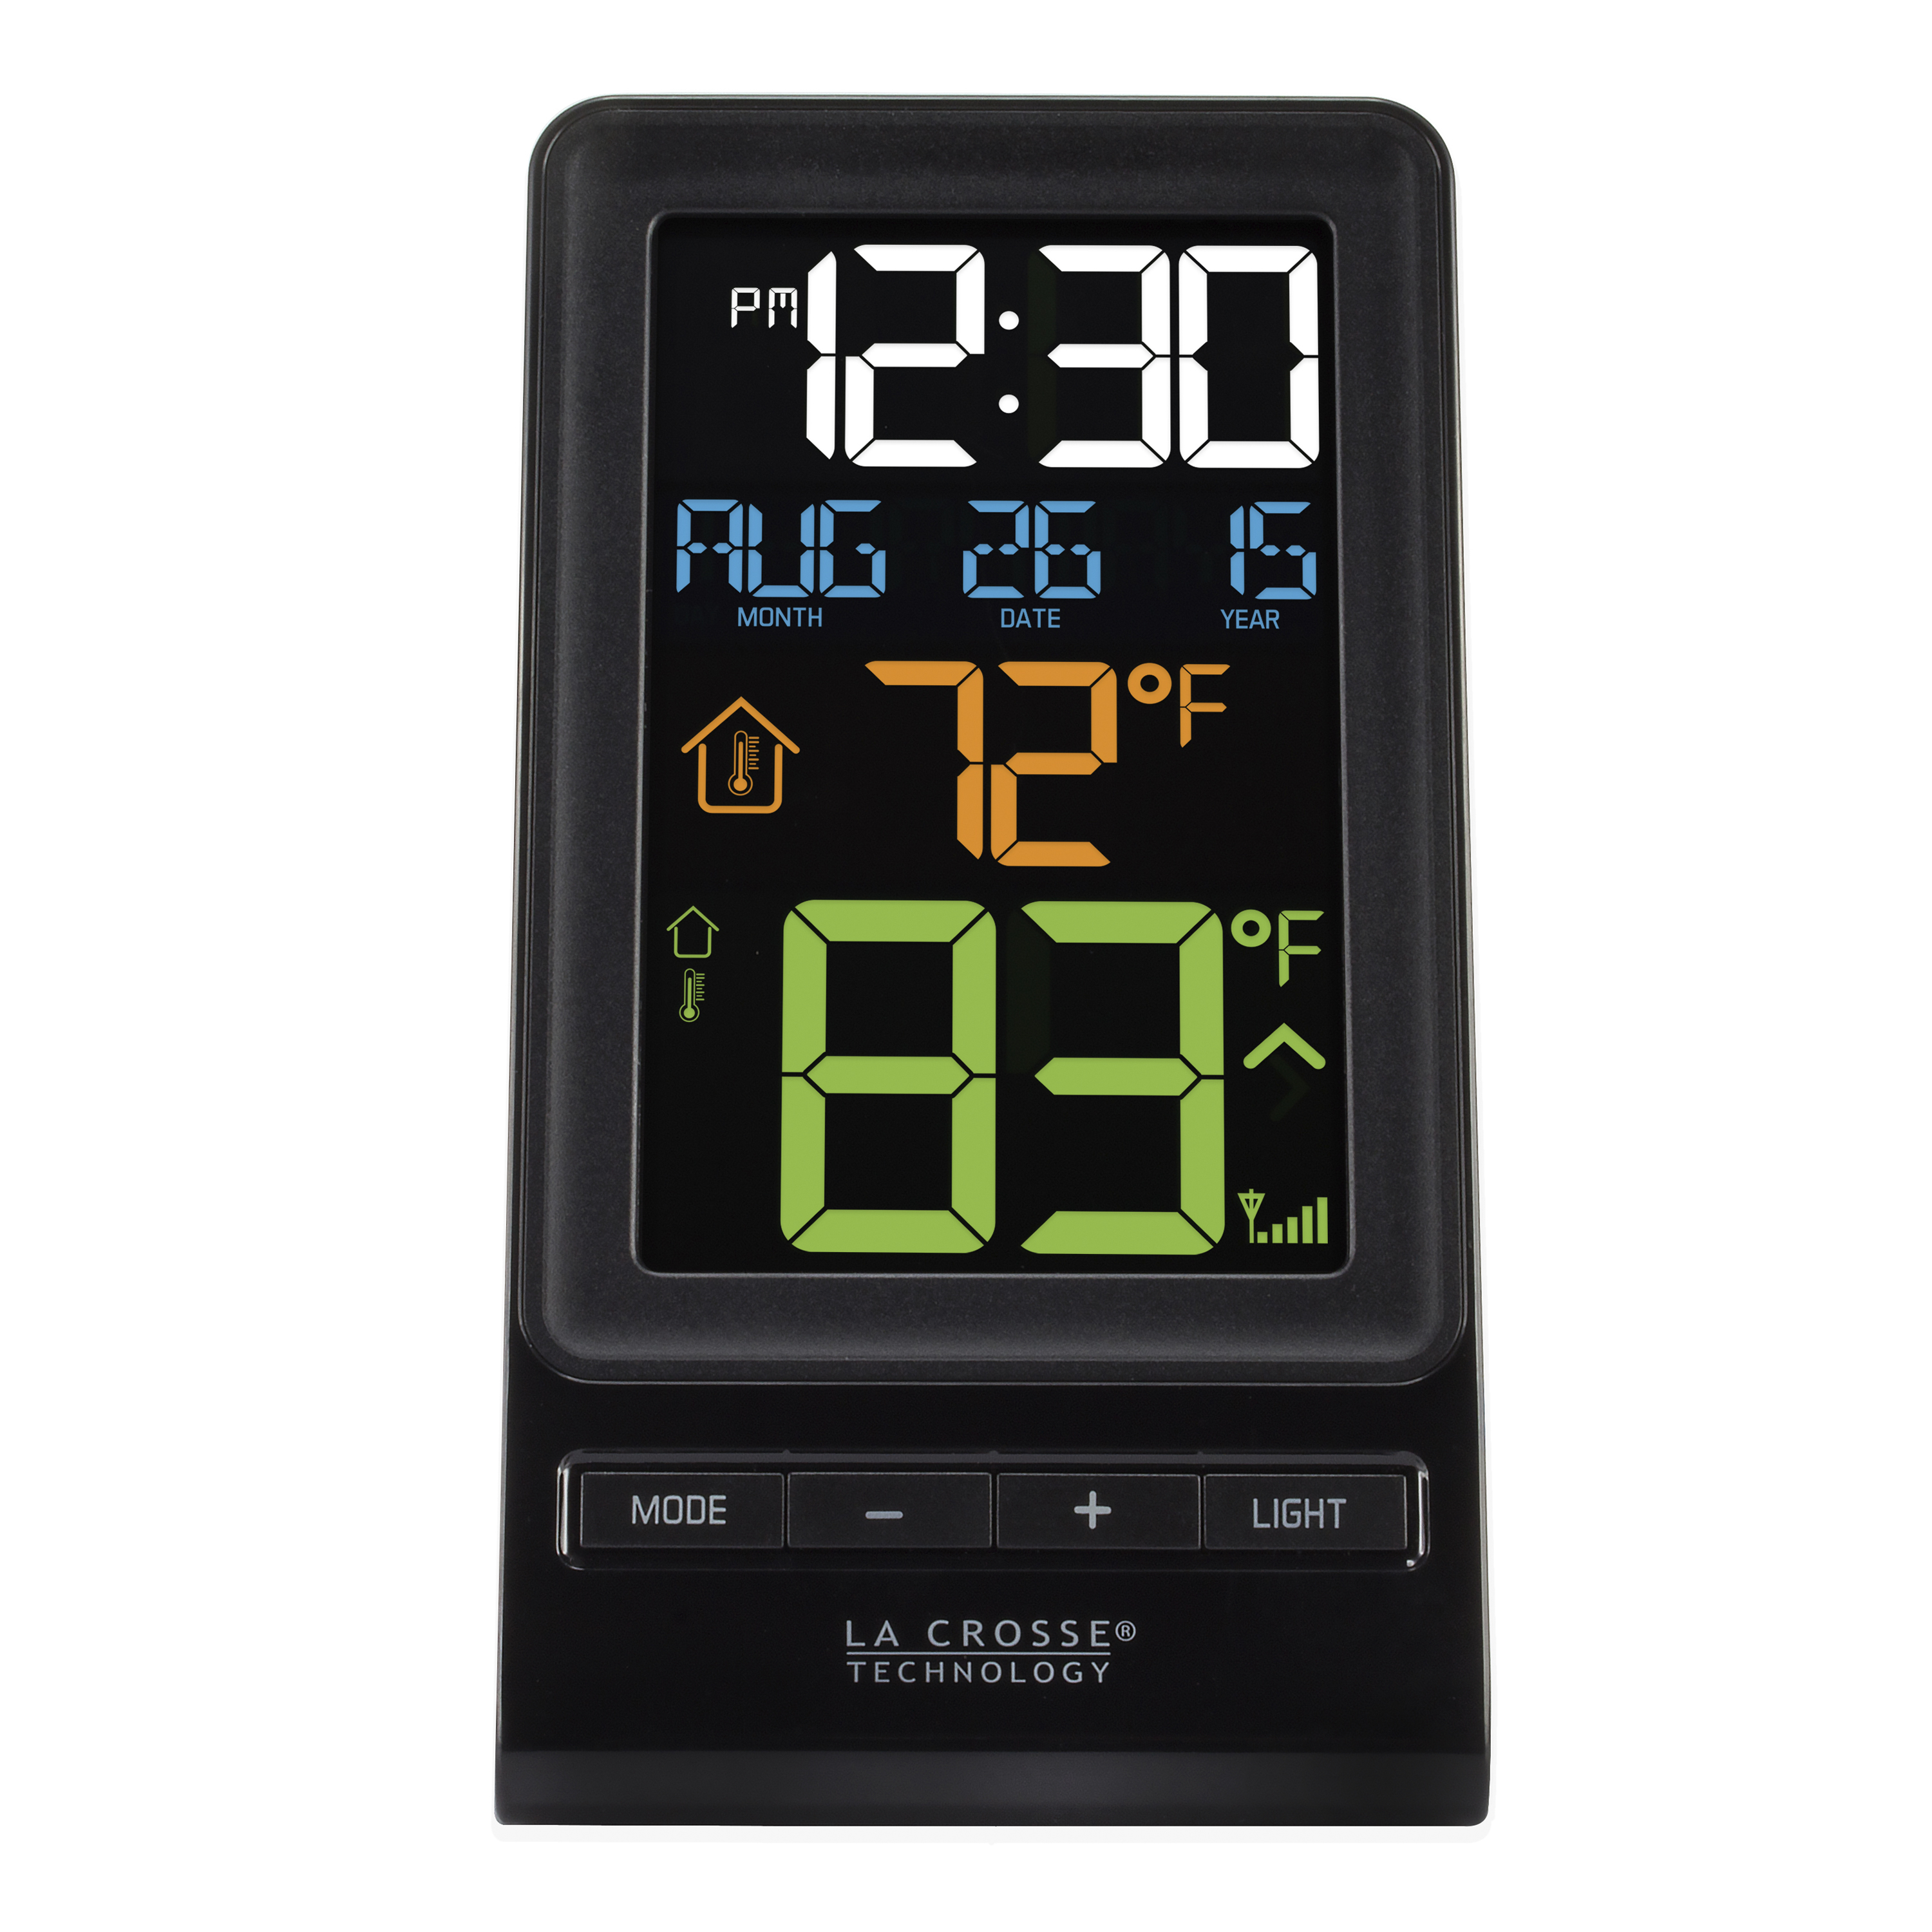 La Crosse Technology 308-1415 Digital Multi-color LCD Wireless Thermometer